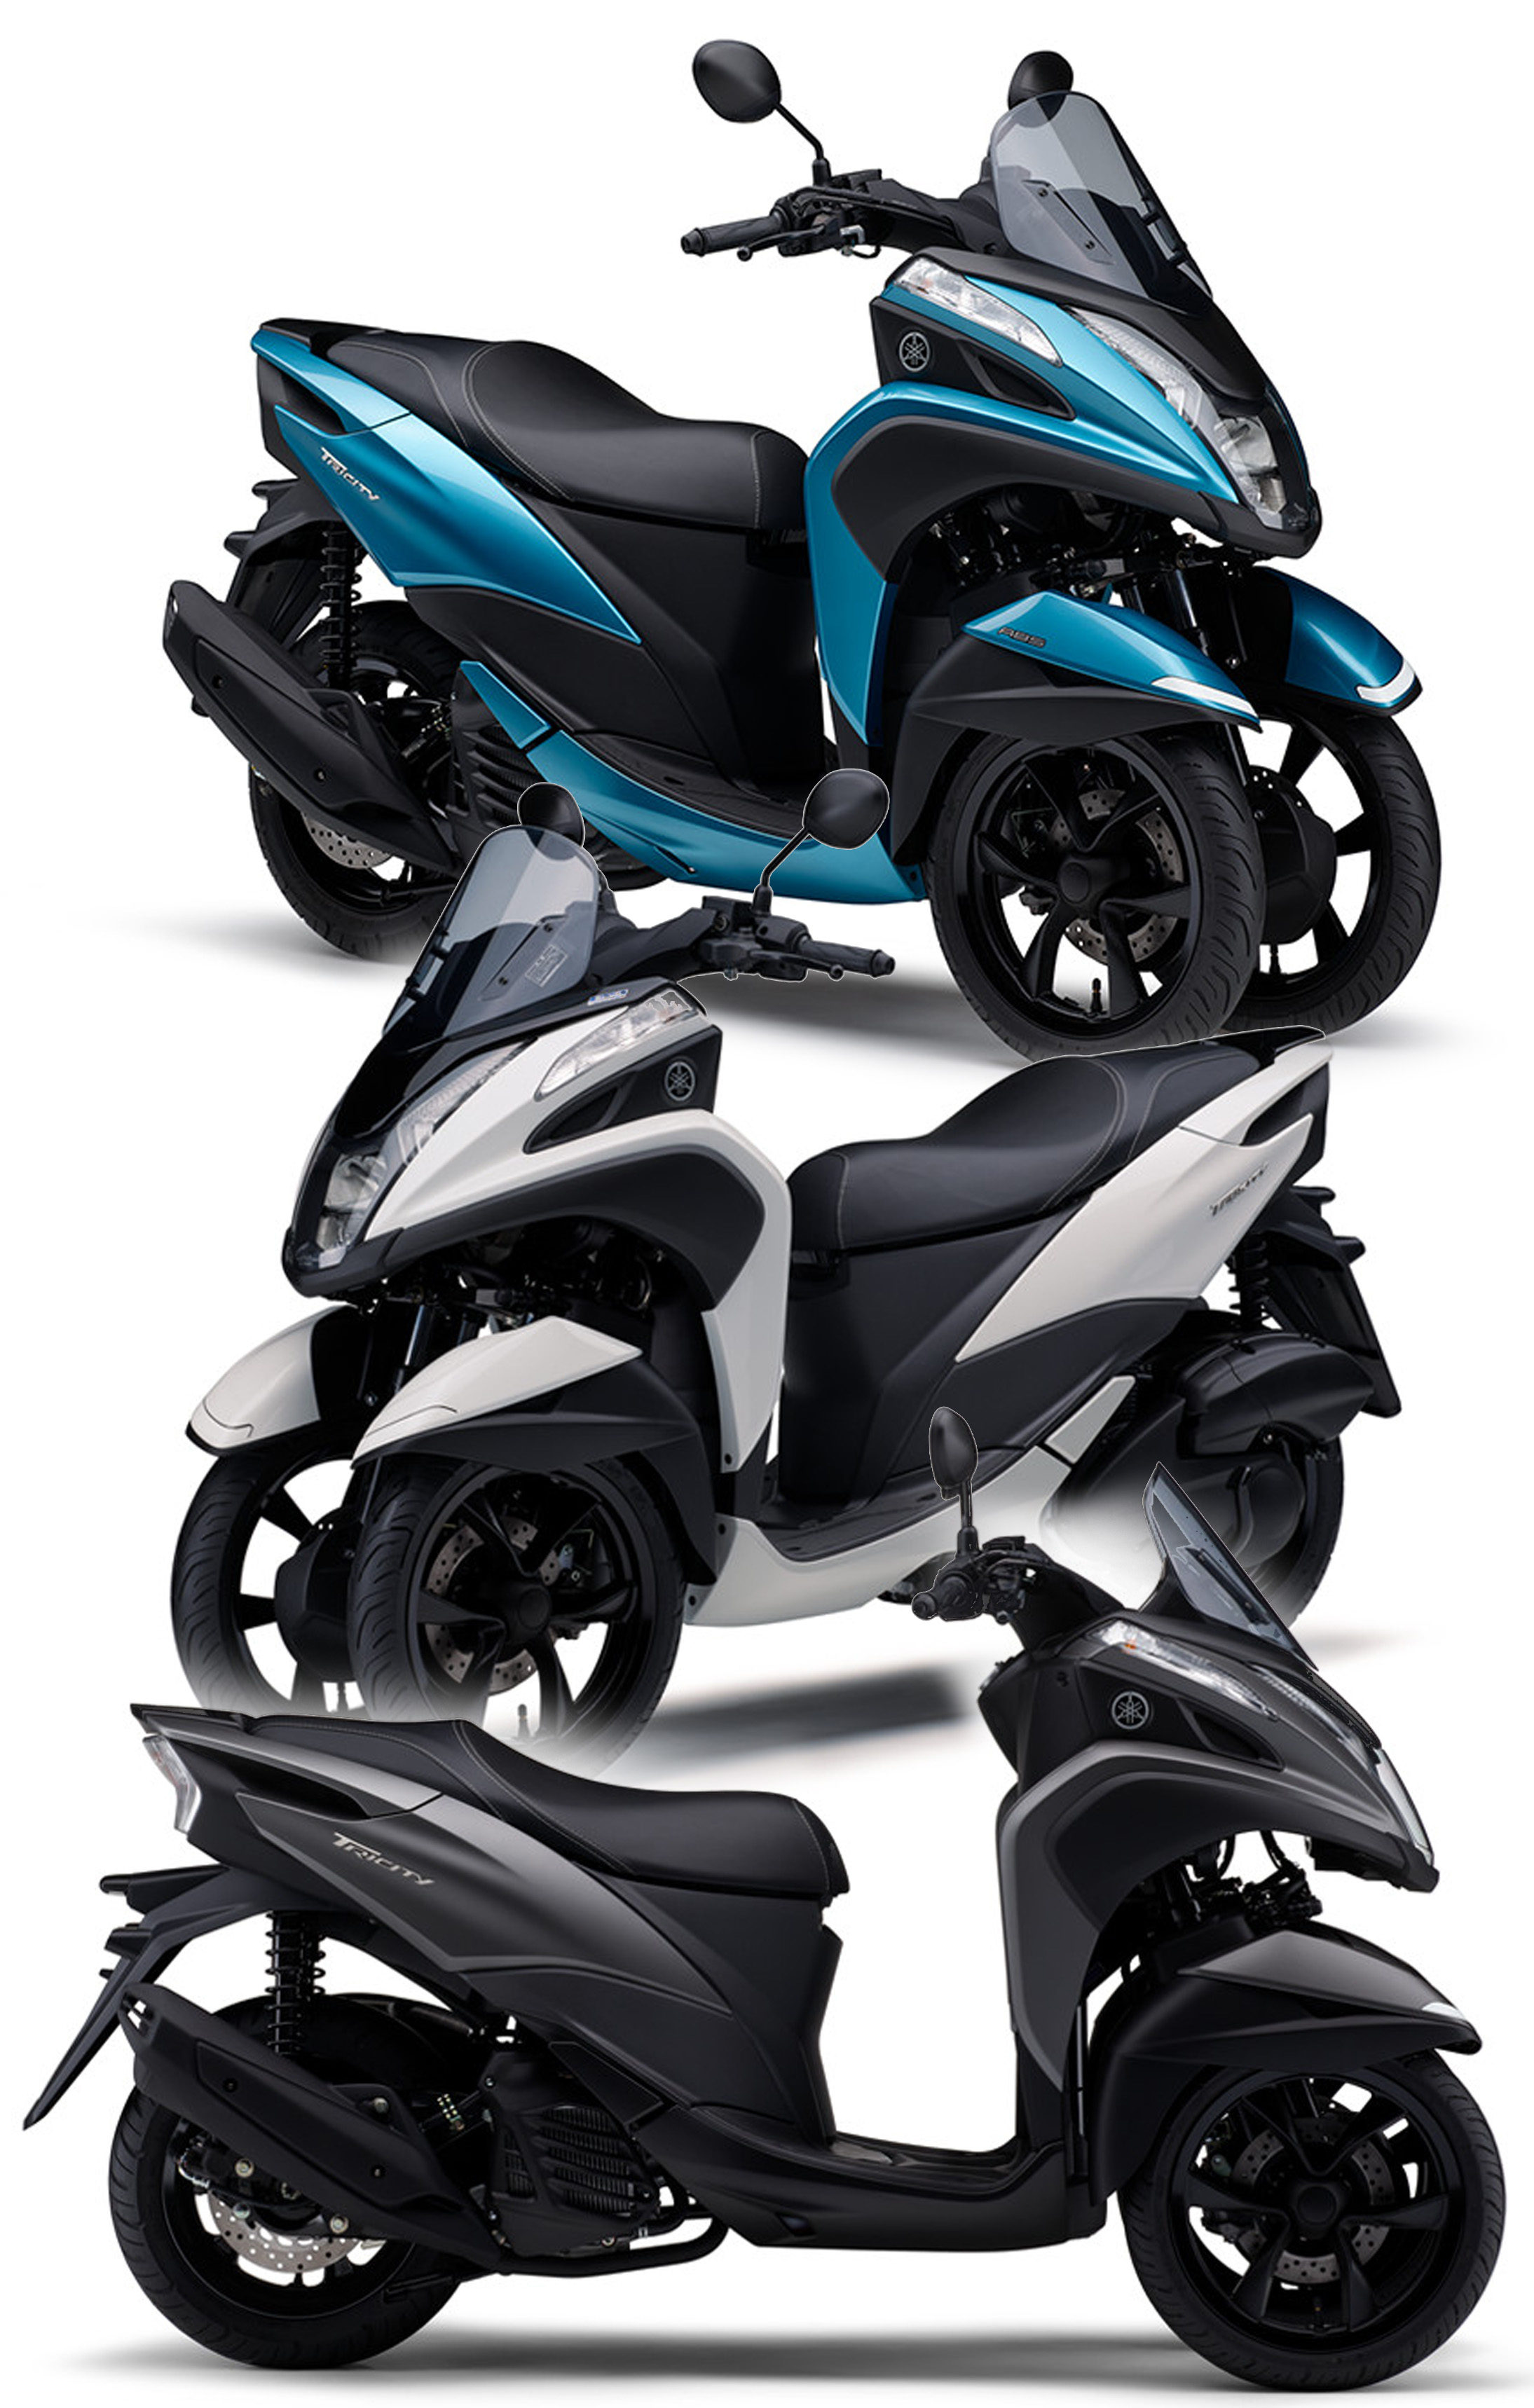 「TRICITY125/ABS」 2018年モデルを発売!